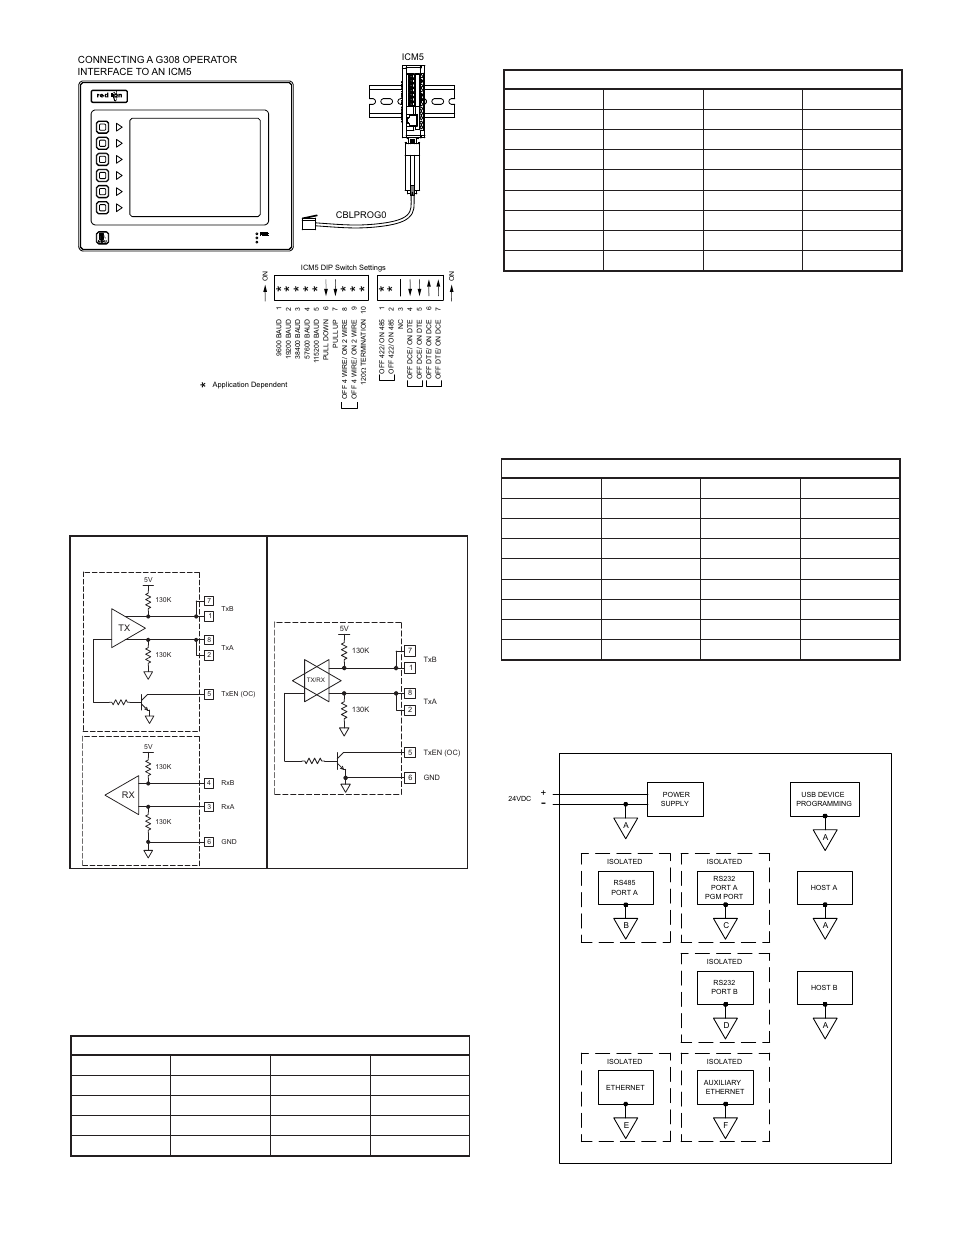 Rs485 Diagram 2wire Wiring Library Rs 485 Pinout Examples Of 2 Wire Connections Dh485 Communications G3 To Modular Controller